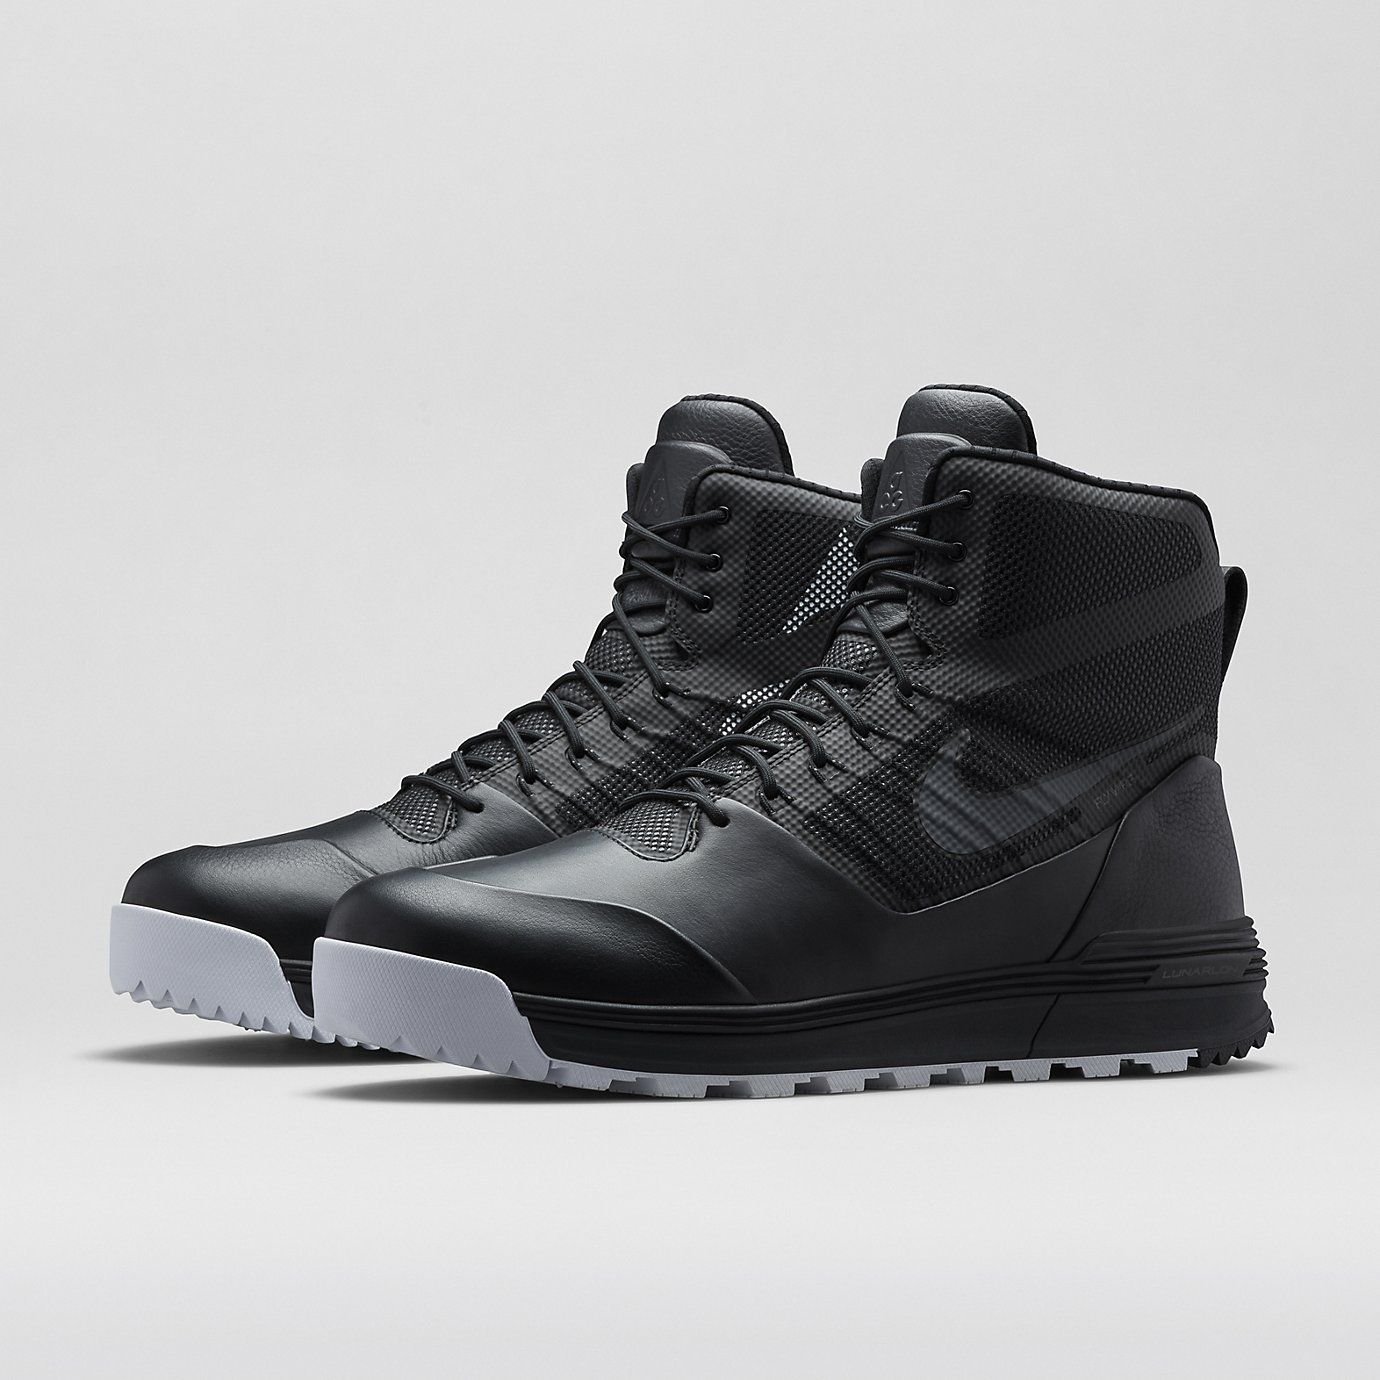 wholesale dealer 2c7f9 57b78 NikeLab ACG LunarTerra Arktos Men s Boot. Nike Store